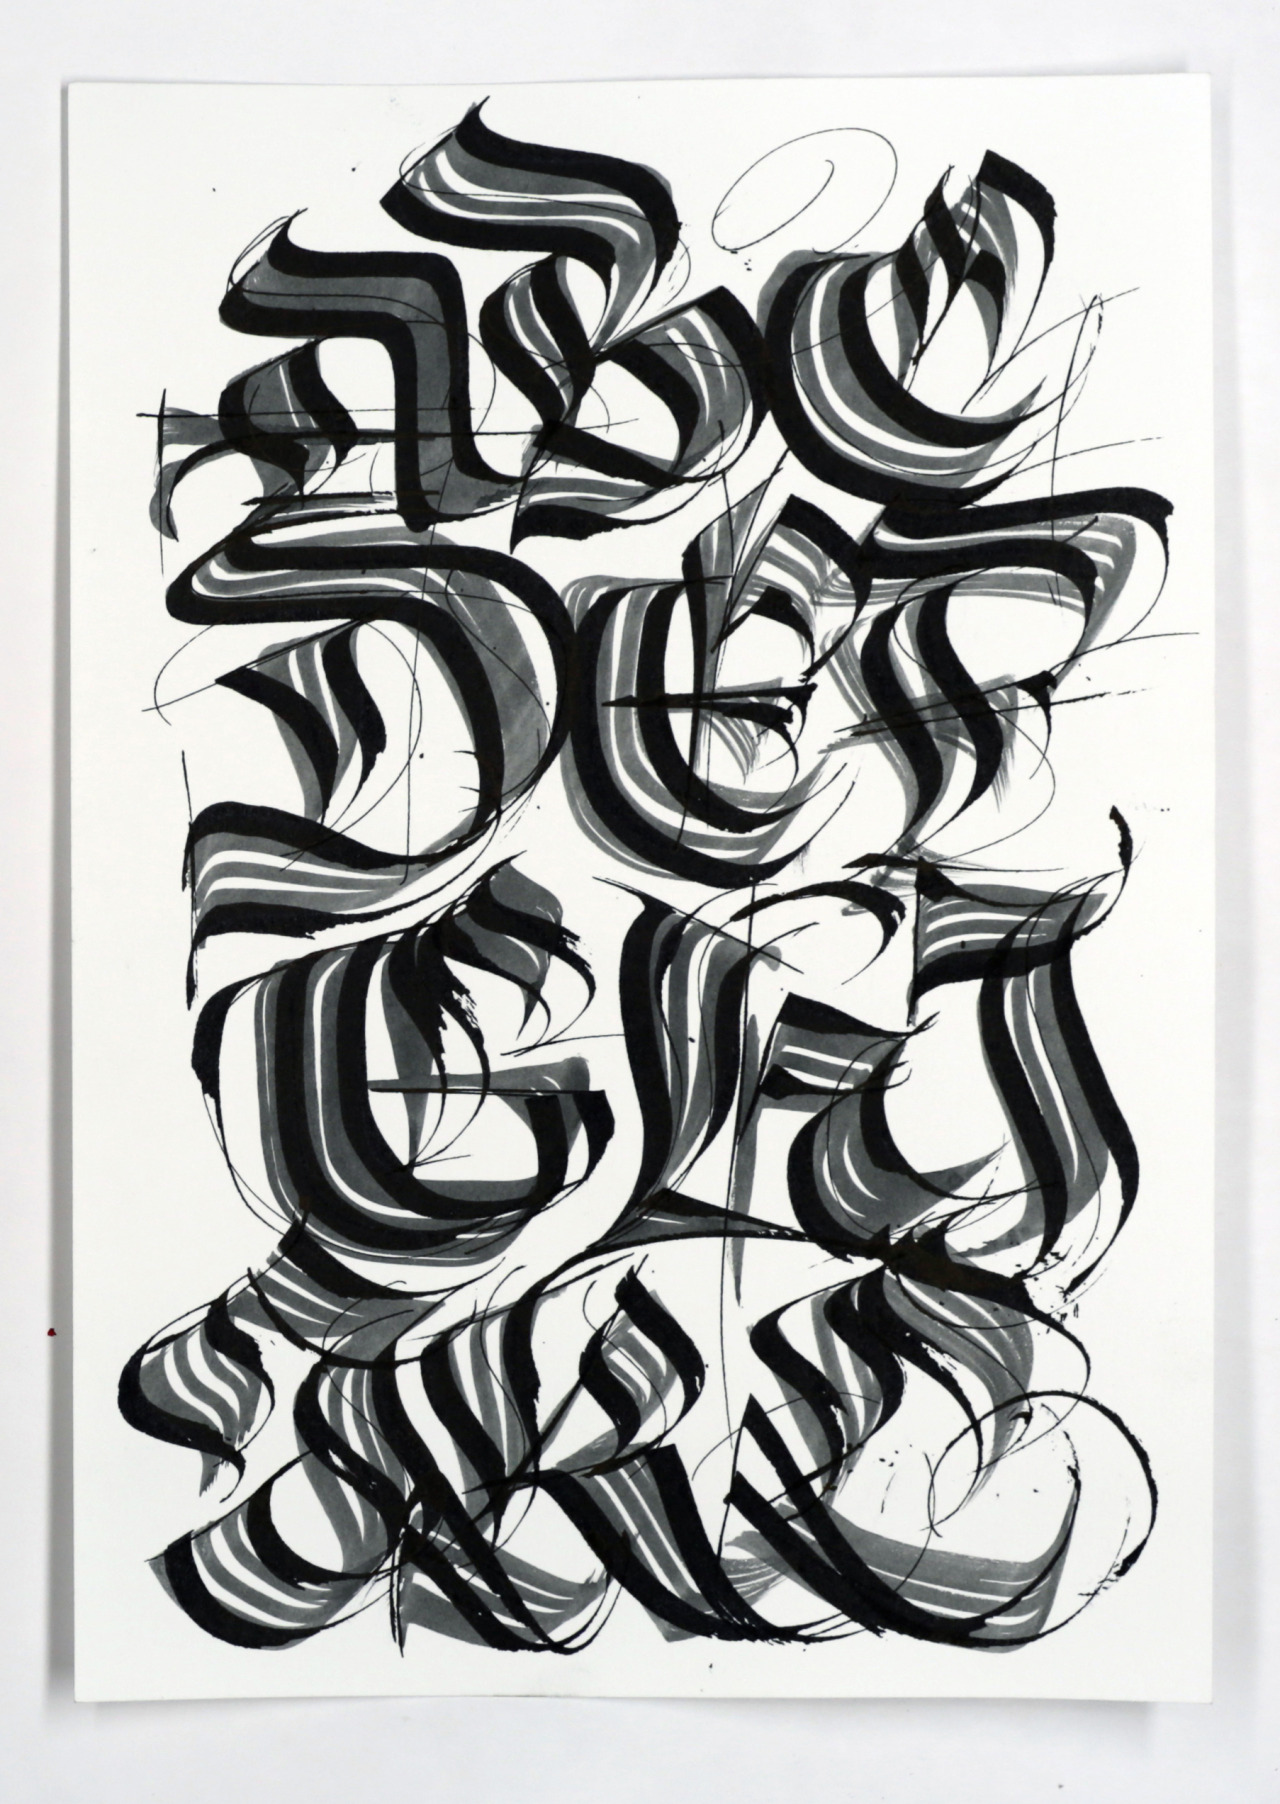 Calligraphi.ca - Letters - Brush and Pilot Parallel Pen - Misha Karagezyan